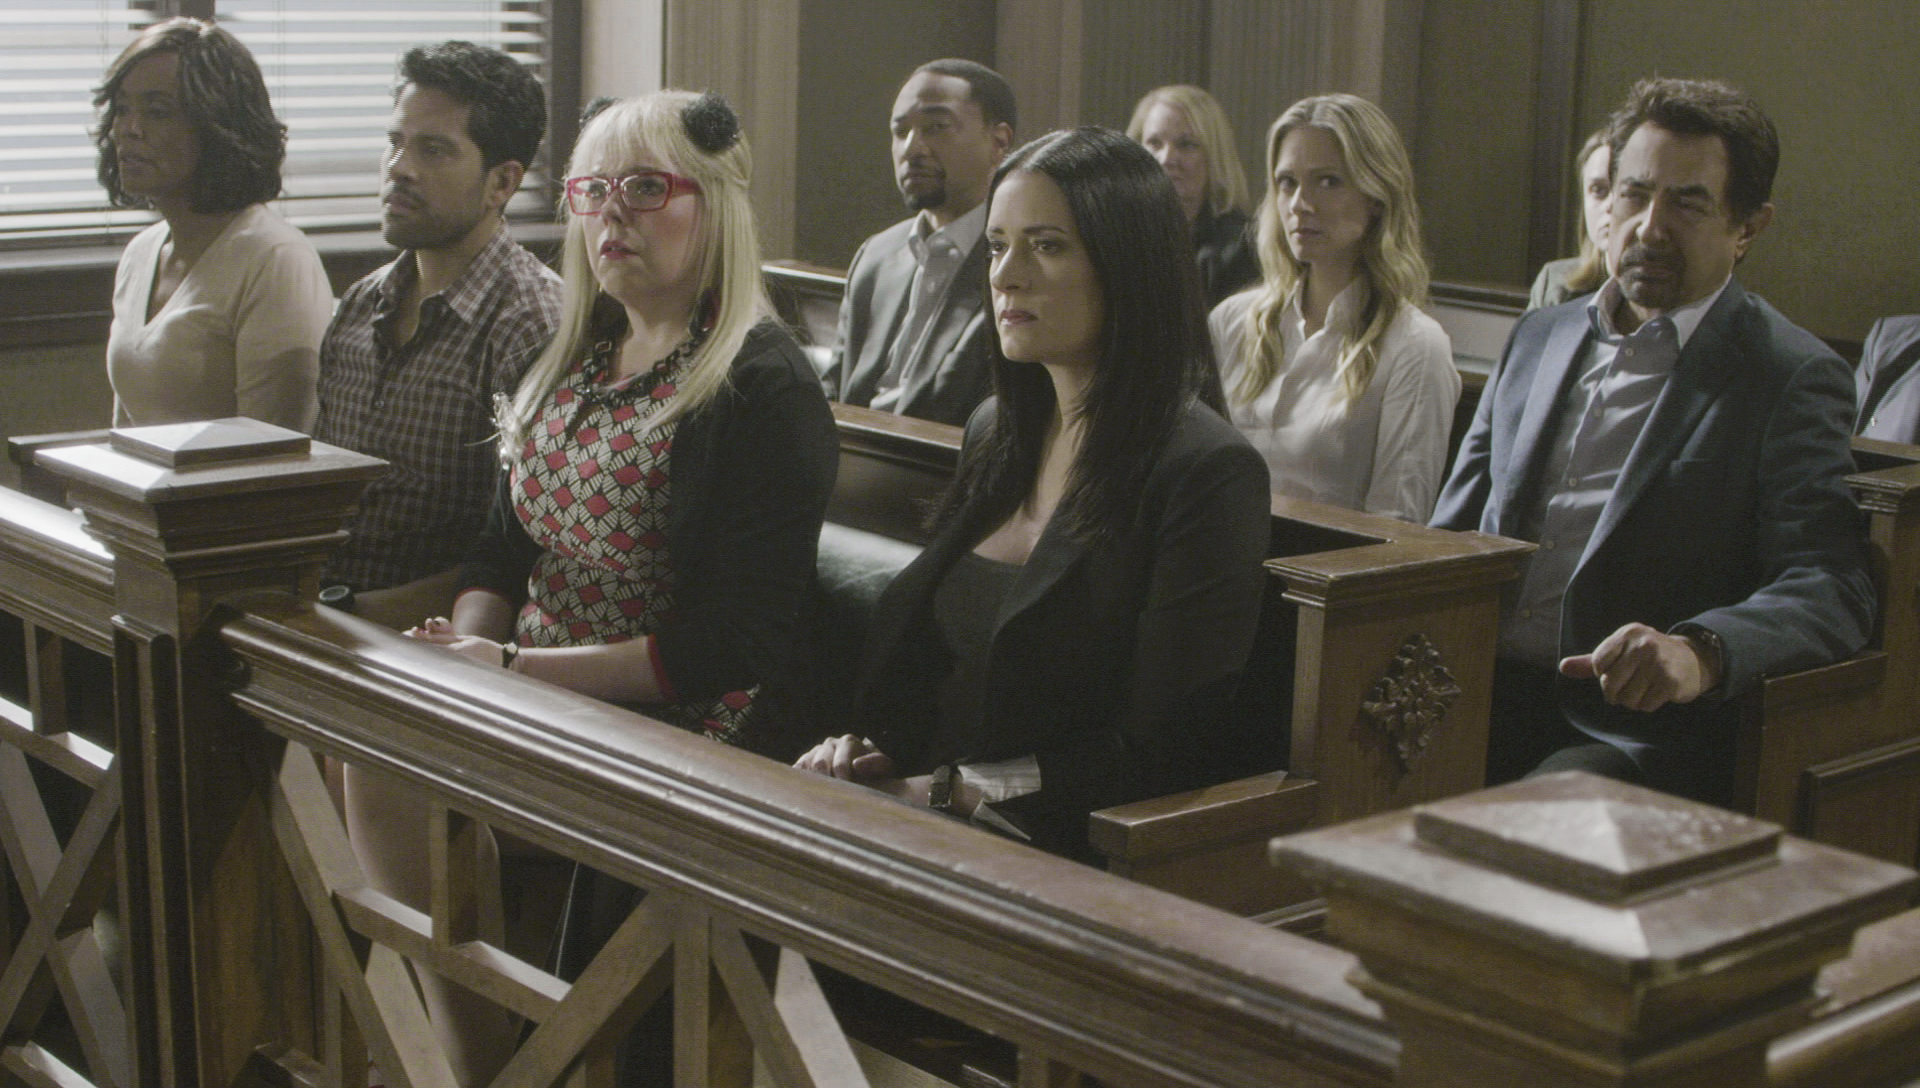 When the entire team supported Reid through every step in the justice system.